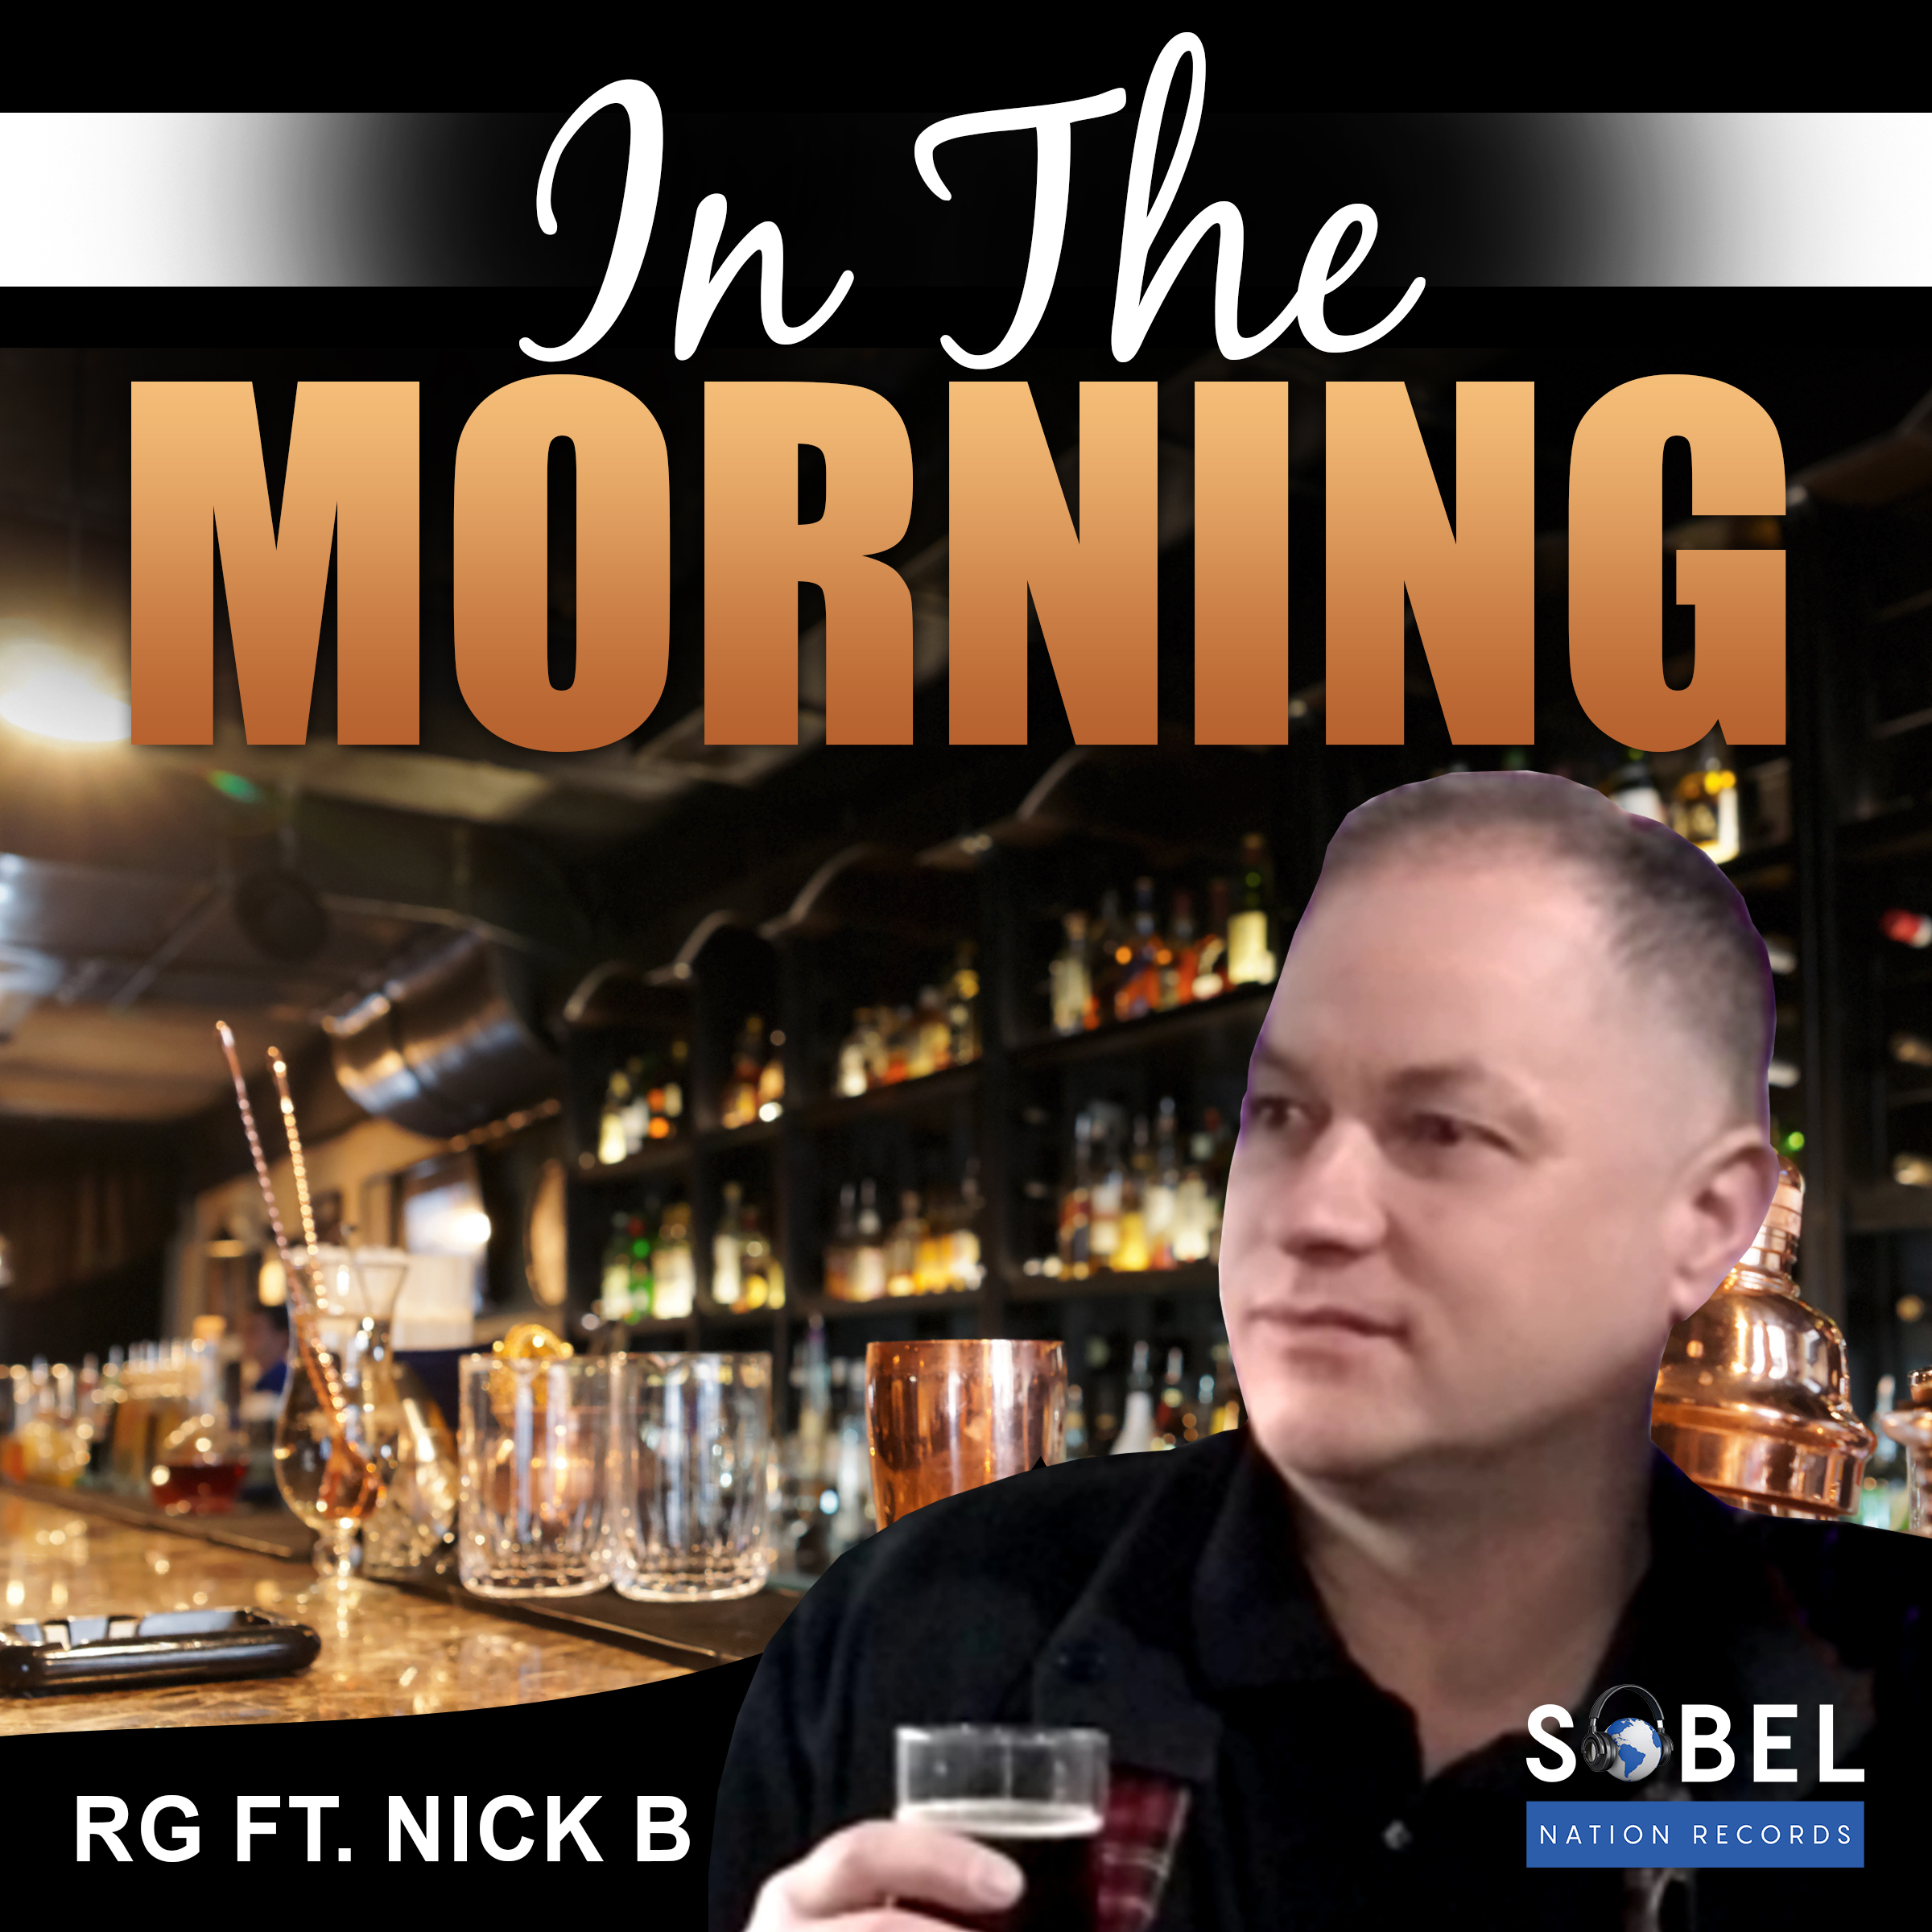 RG Returns To Sobel Nation Records With In The Morning